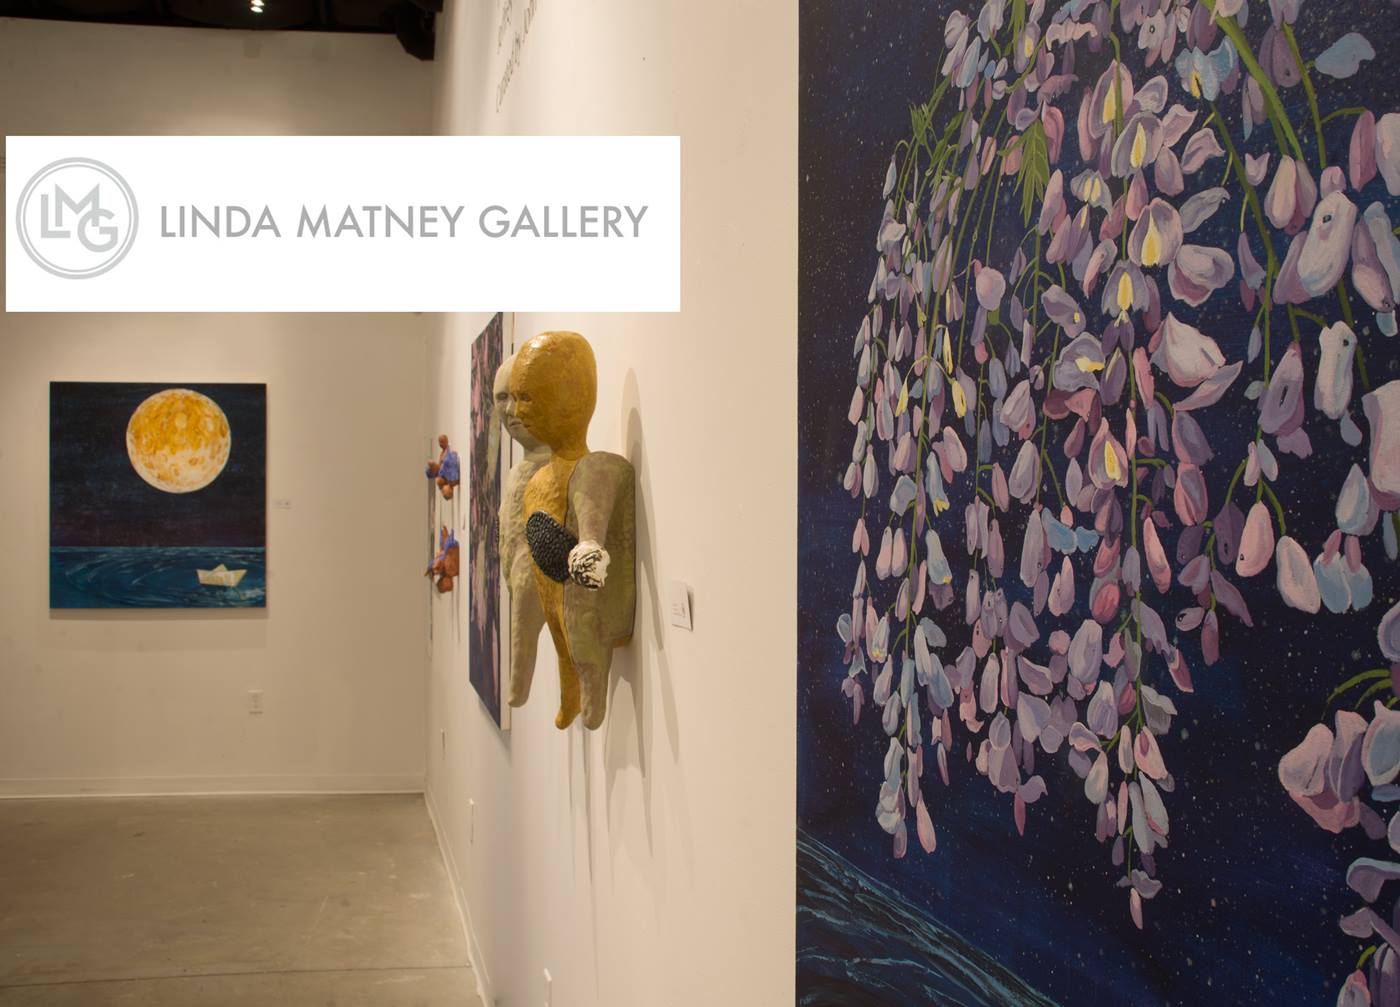 Install at Linda Matney Gallery. Works shown are Jeffrey Whittle's  Ripple Effects( far left), Crisha Yantis ' Progression II  (center) and Whittle's  Celestial Bouquet (right)